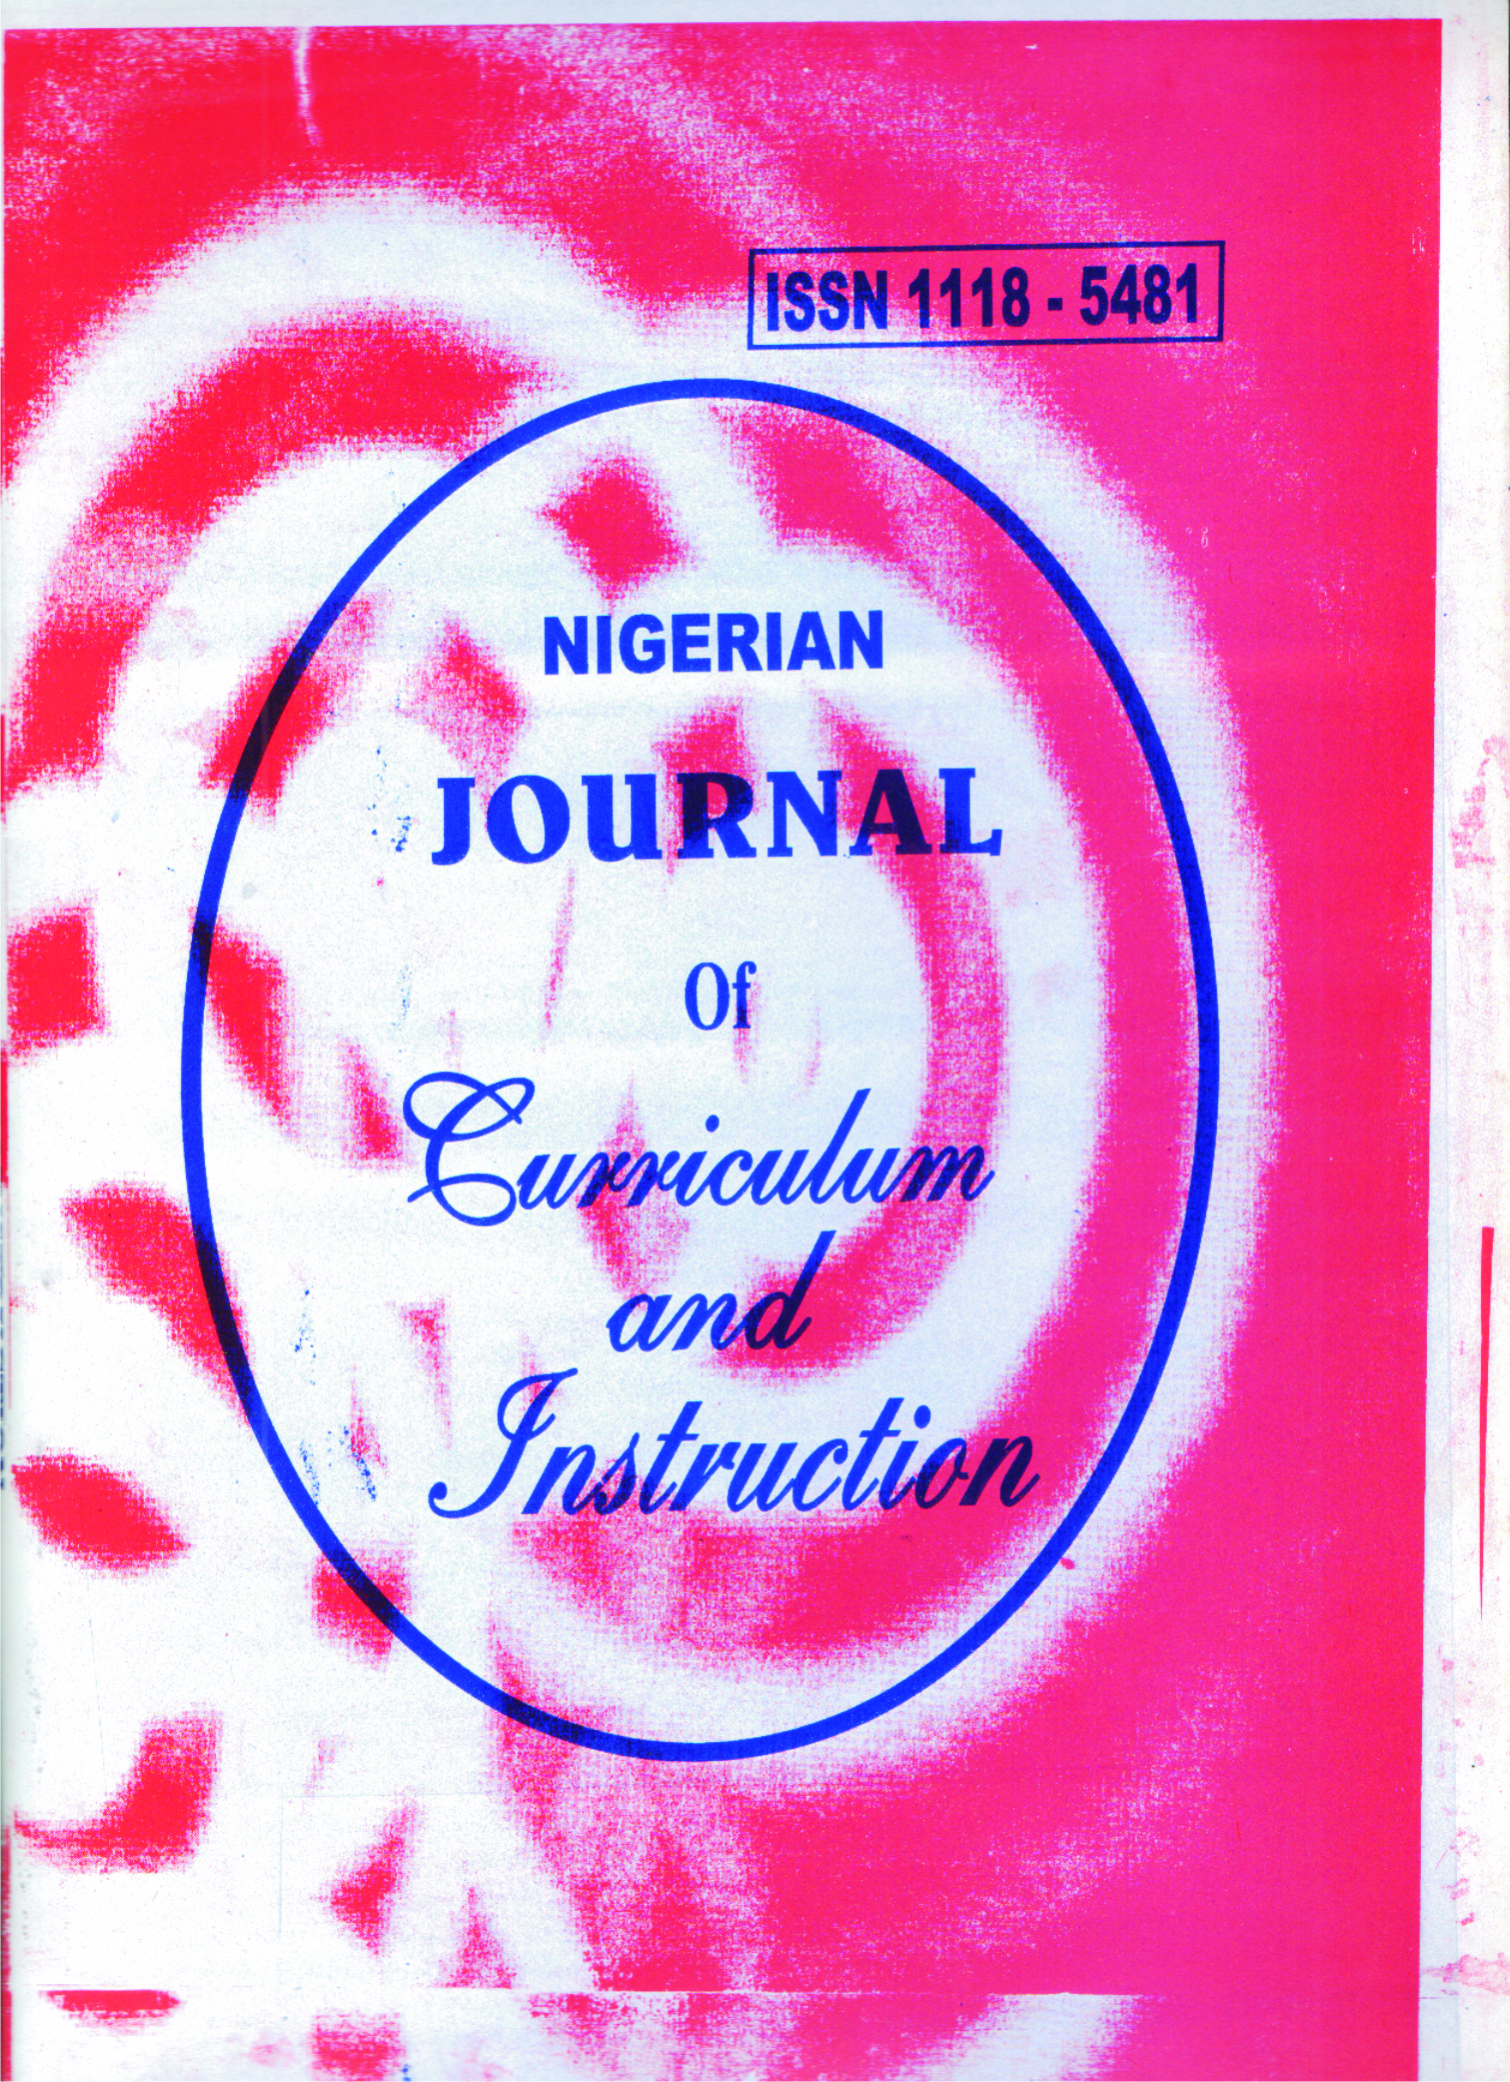 Nigerian Journal of Curriculum and Instruction